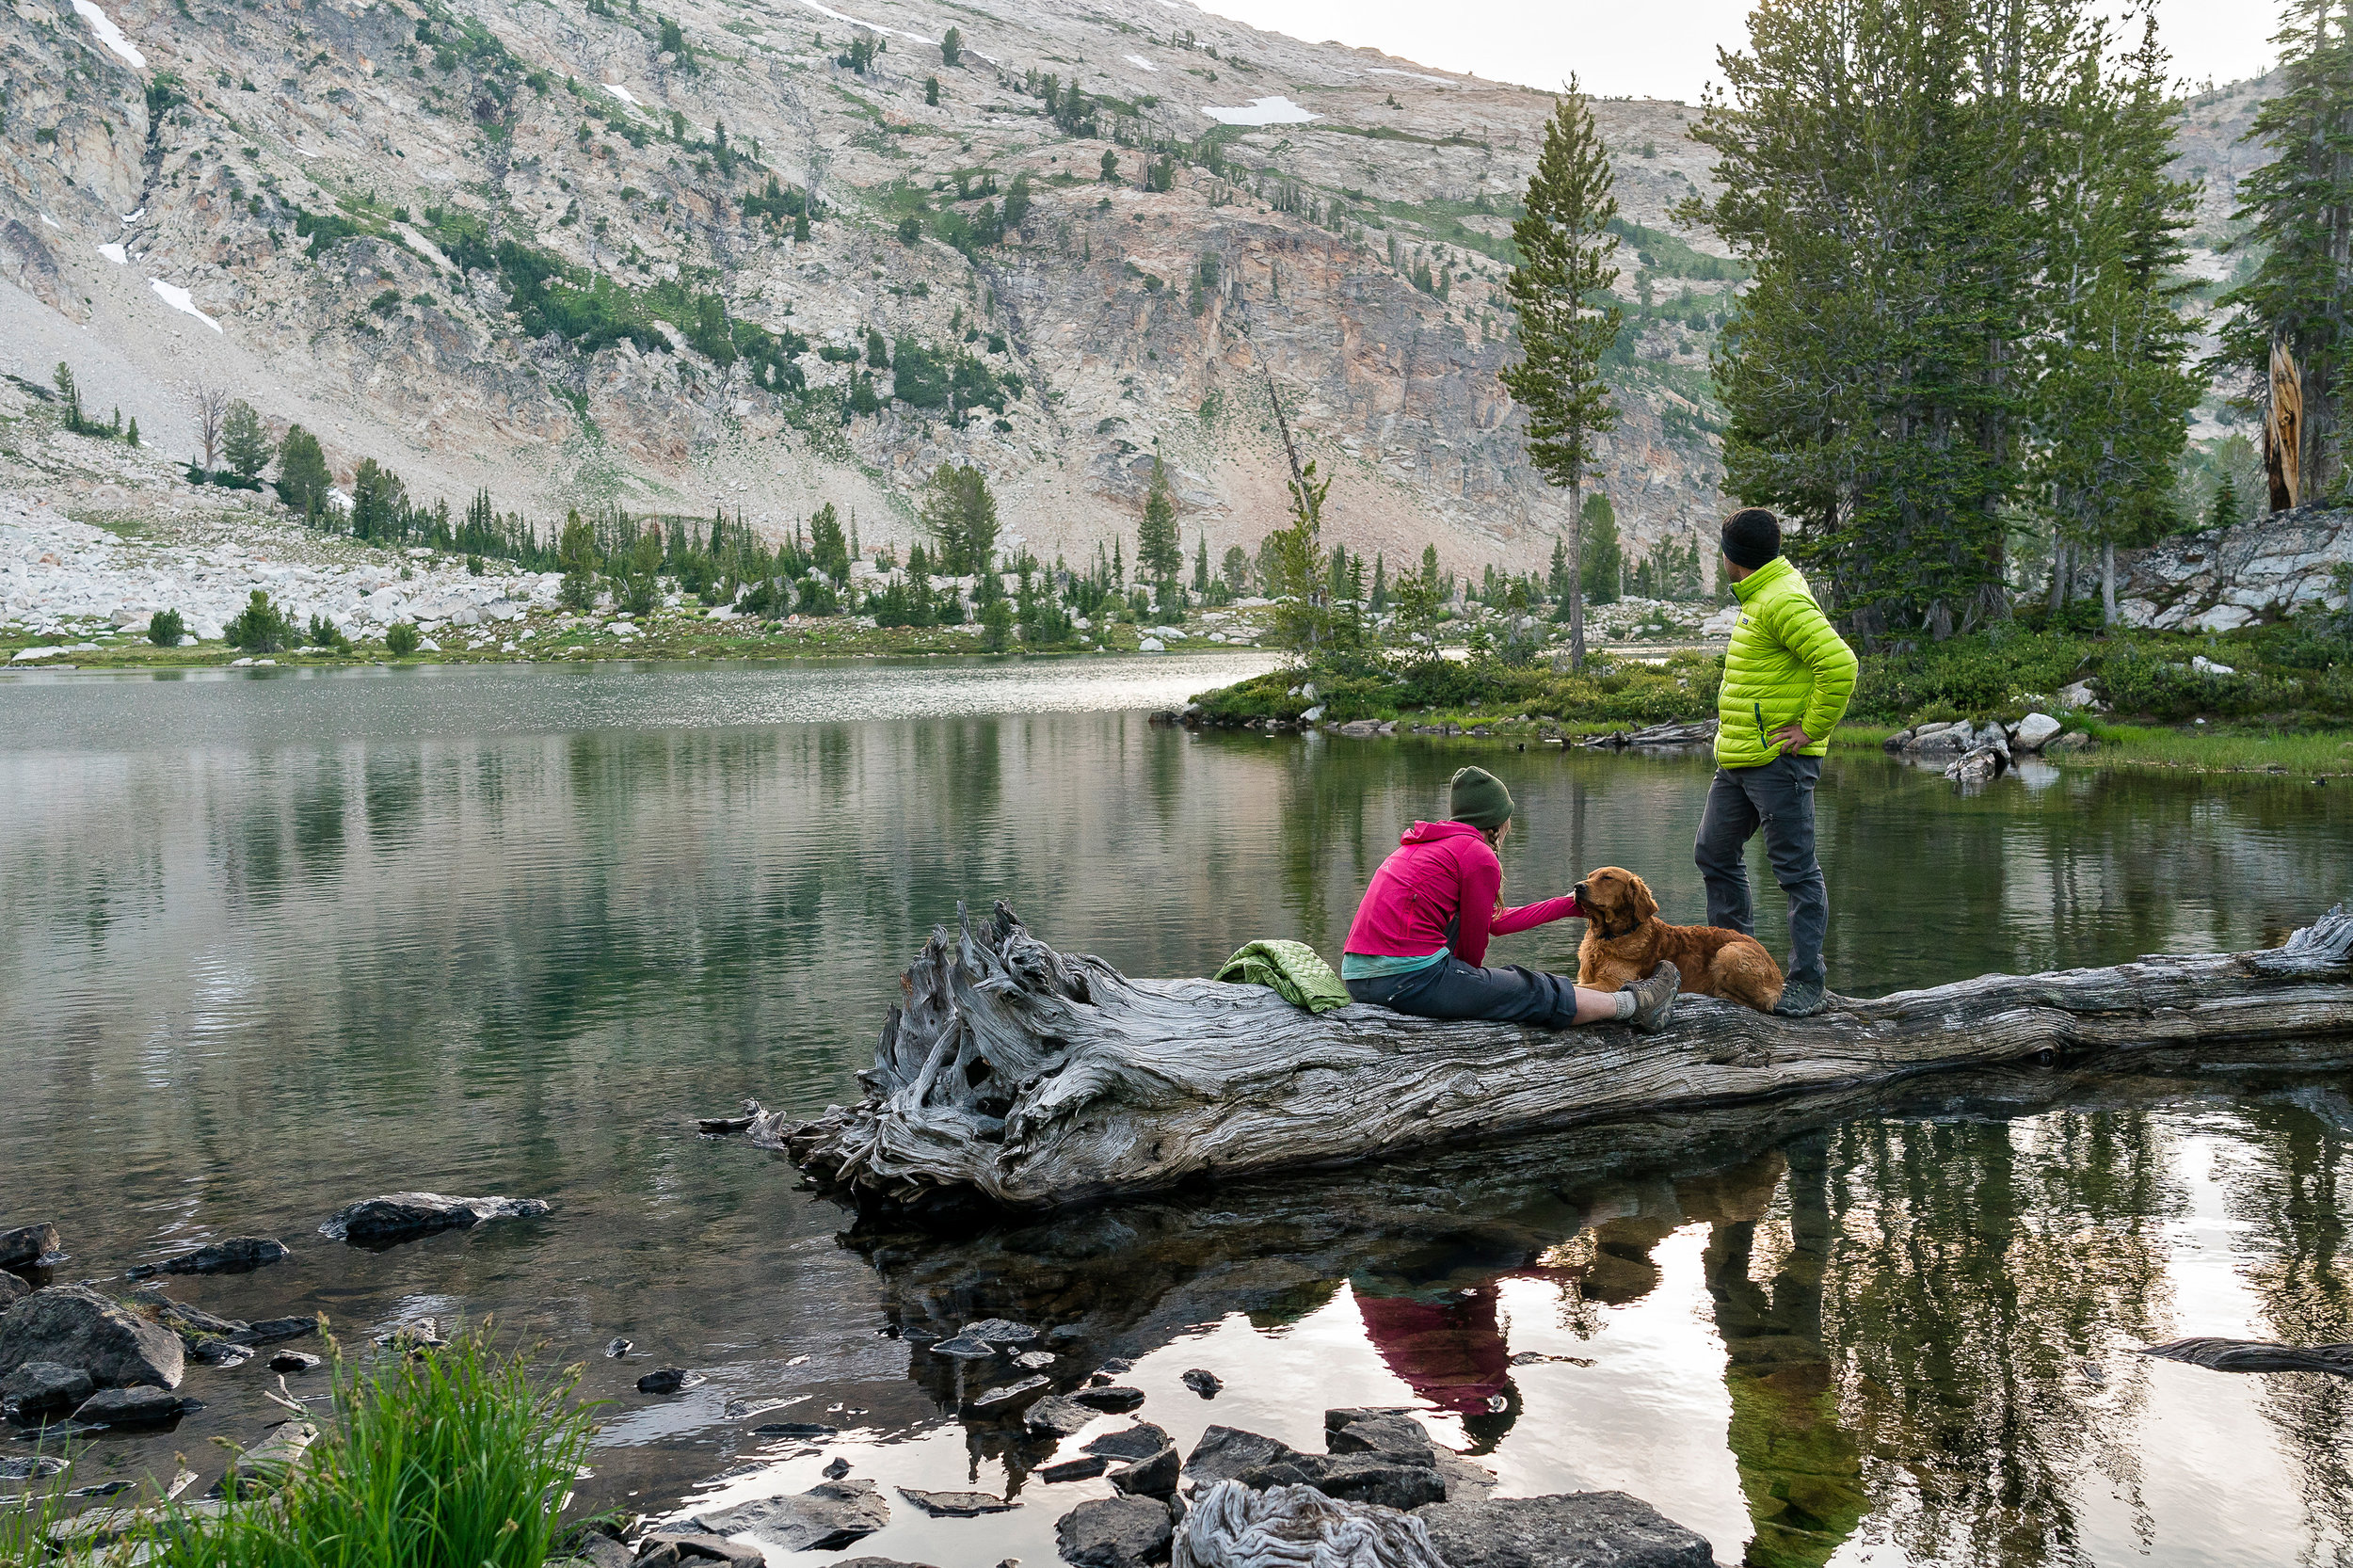 outdoor_lifestyle_Idaho_Ketchum_hiking_Stephen_Matera_7-21-18_DSC4974.jpg